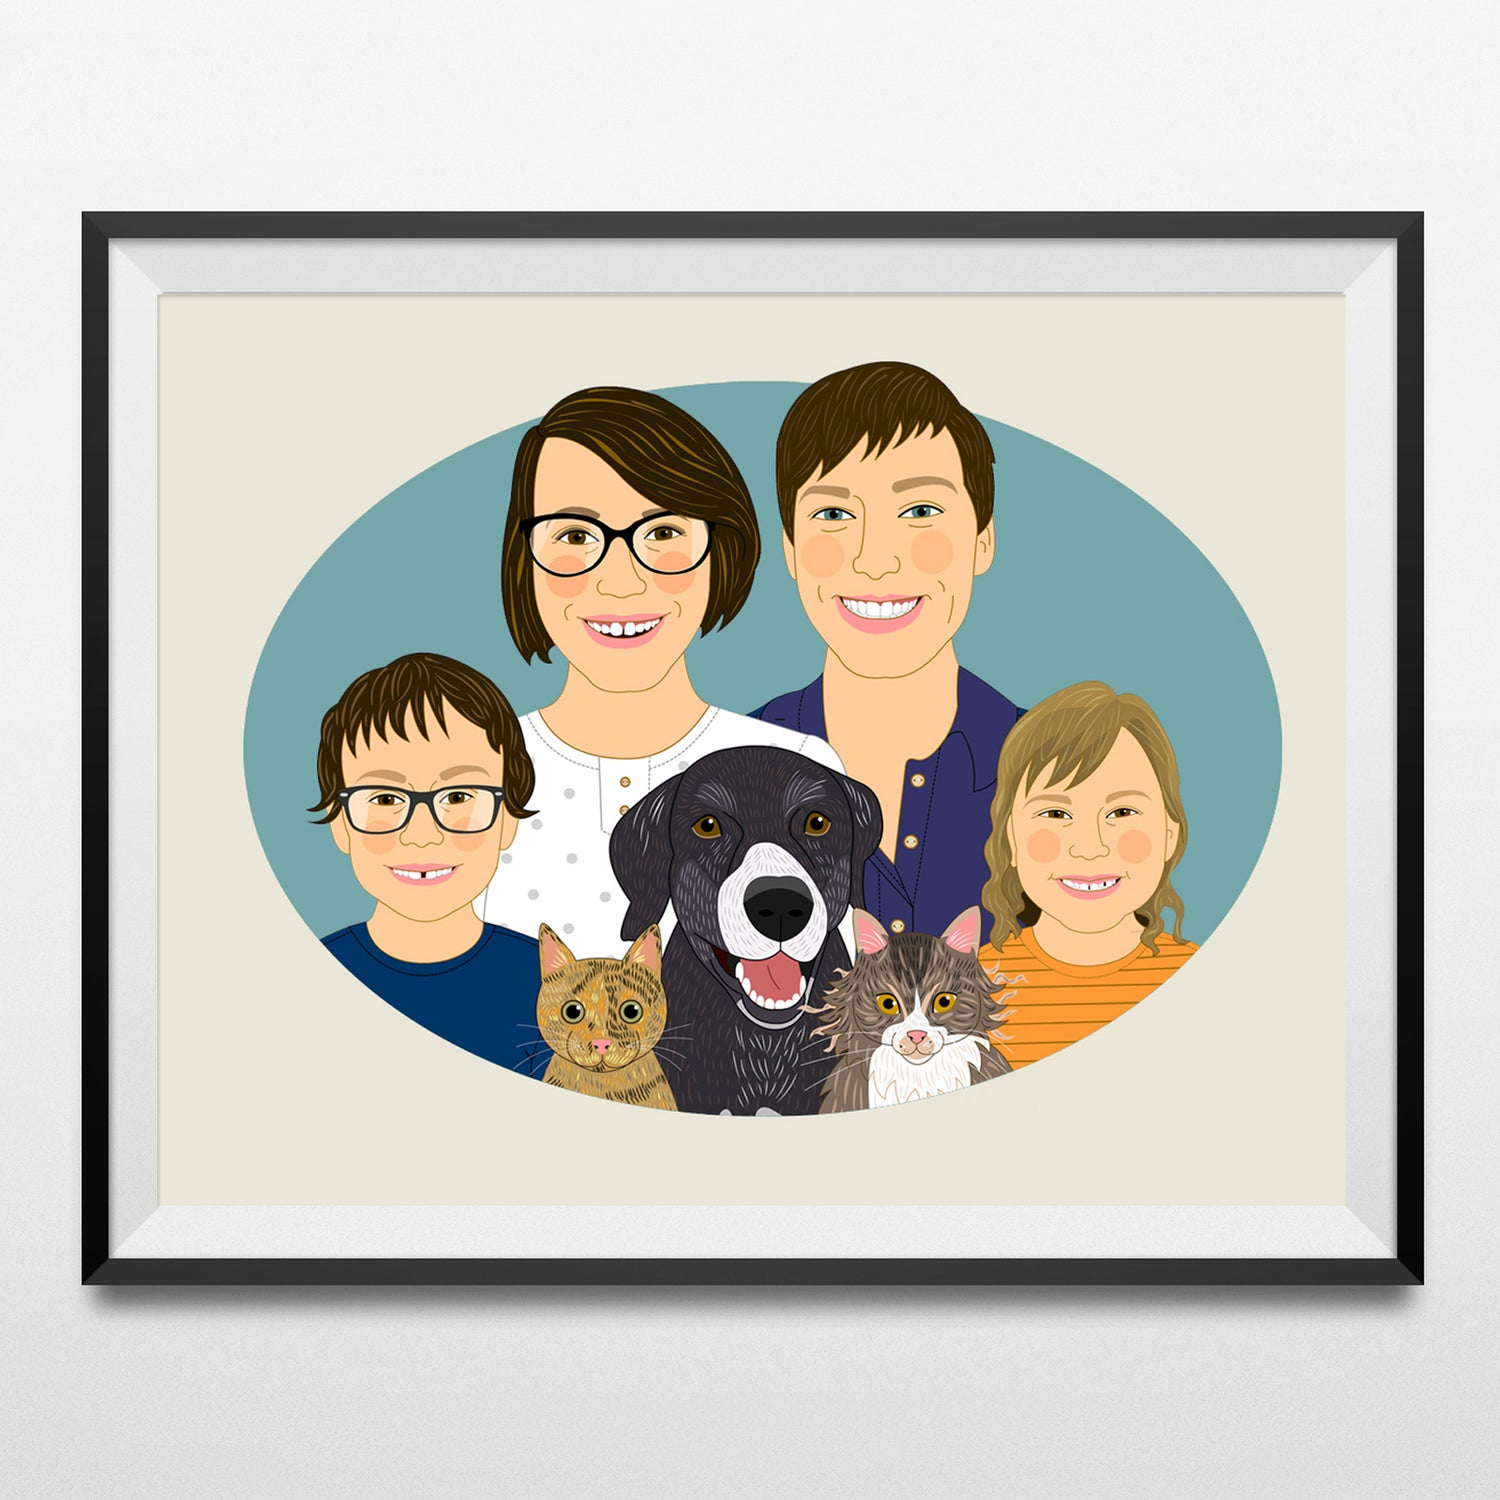 Image of Large family portraits. More than 4 people or pet.